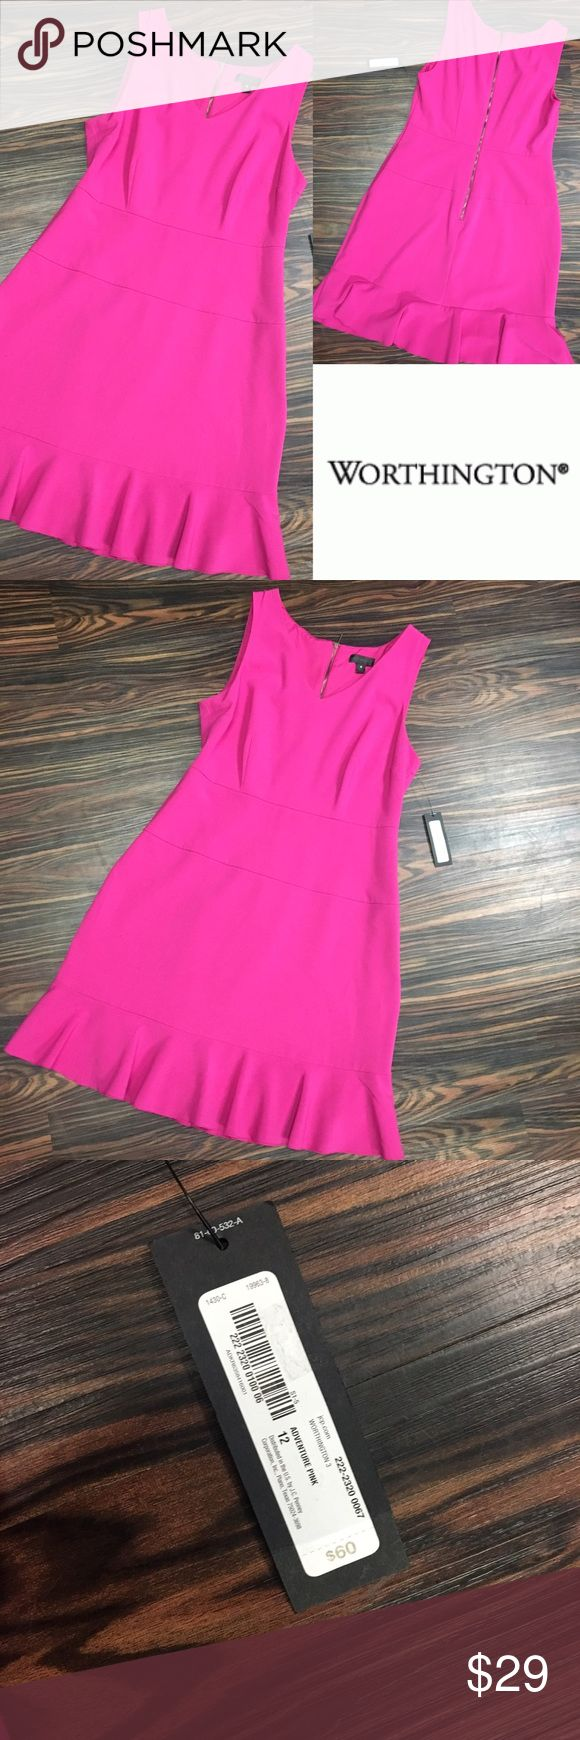 NWT Hot pink fit and flare dress Perfect dress for any occasion, dress it up with a statement necklace and heels, to work with a blazer and pumps, or dress it down with a Jean jacket and sandals.  Hot pink perfection, size 12. Dresses